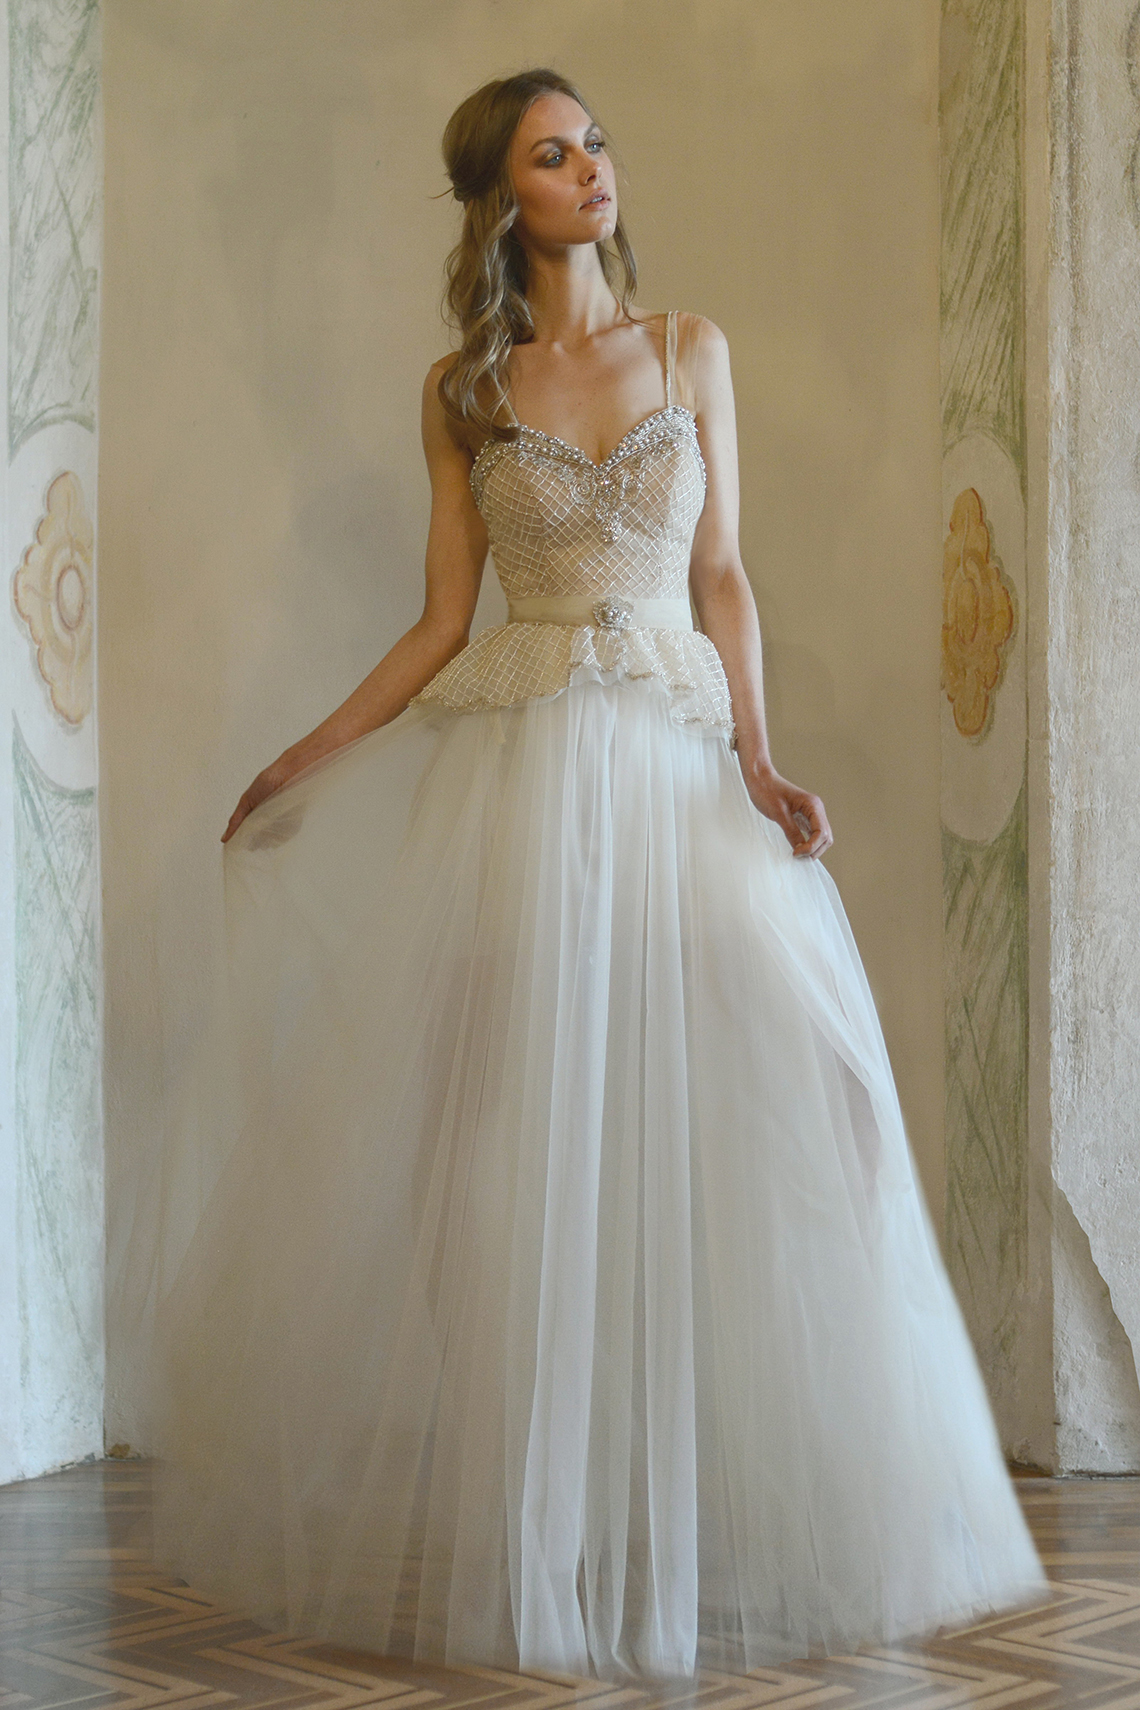 Reuma yoel the vine and horizon wedding dress for Wedding dresses in europe